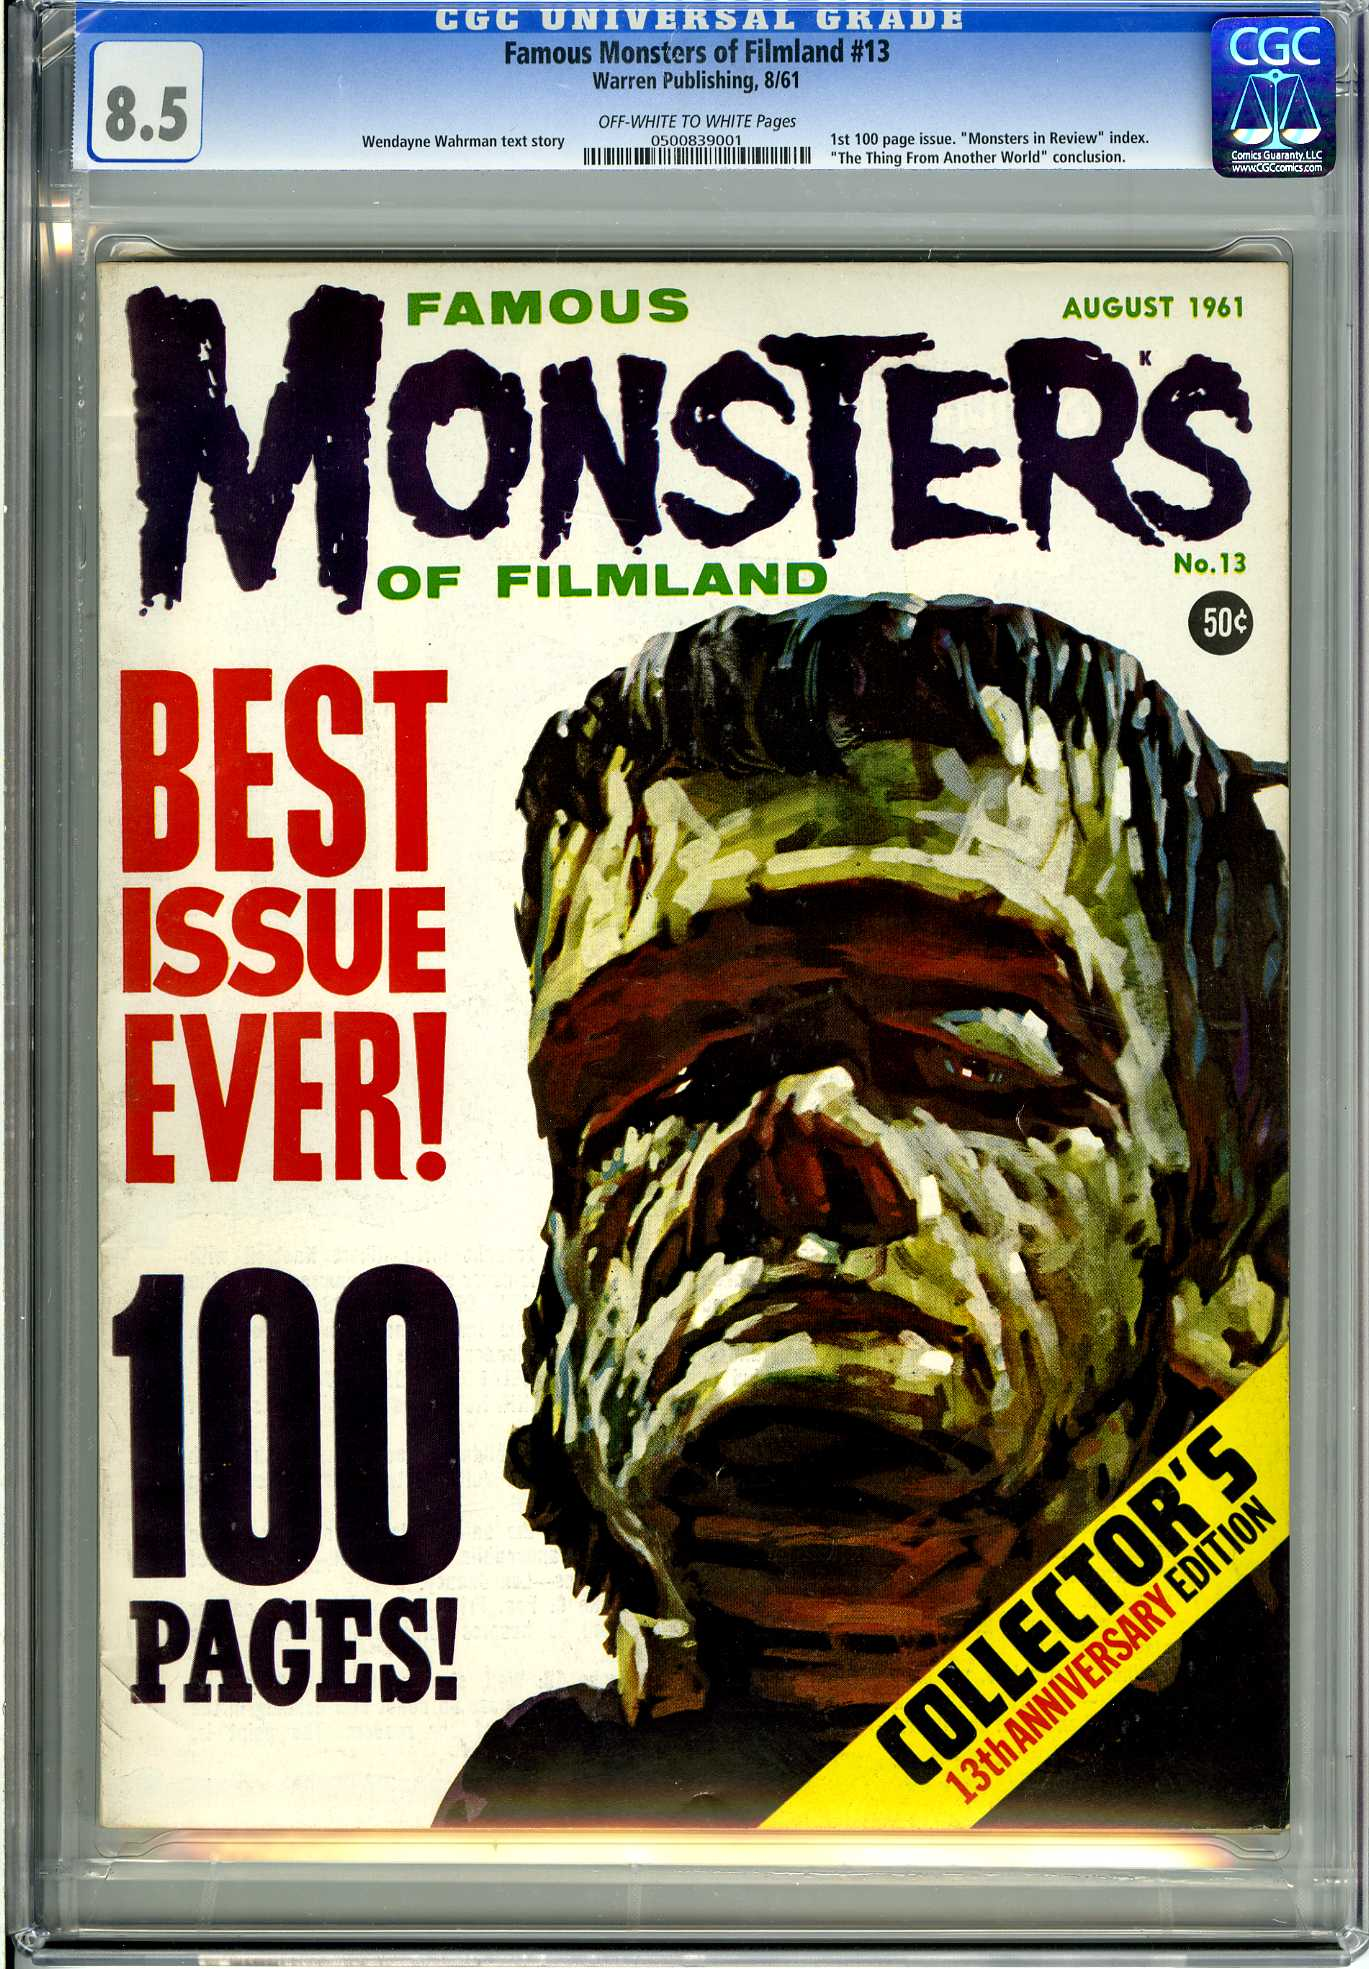 FAMOUS MONSTERS OF FILMLAND #13 (1961) CGC VF+ 8.5 - OWW Pgs - MONSTERS IN REVIEW